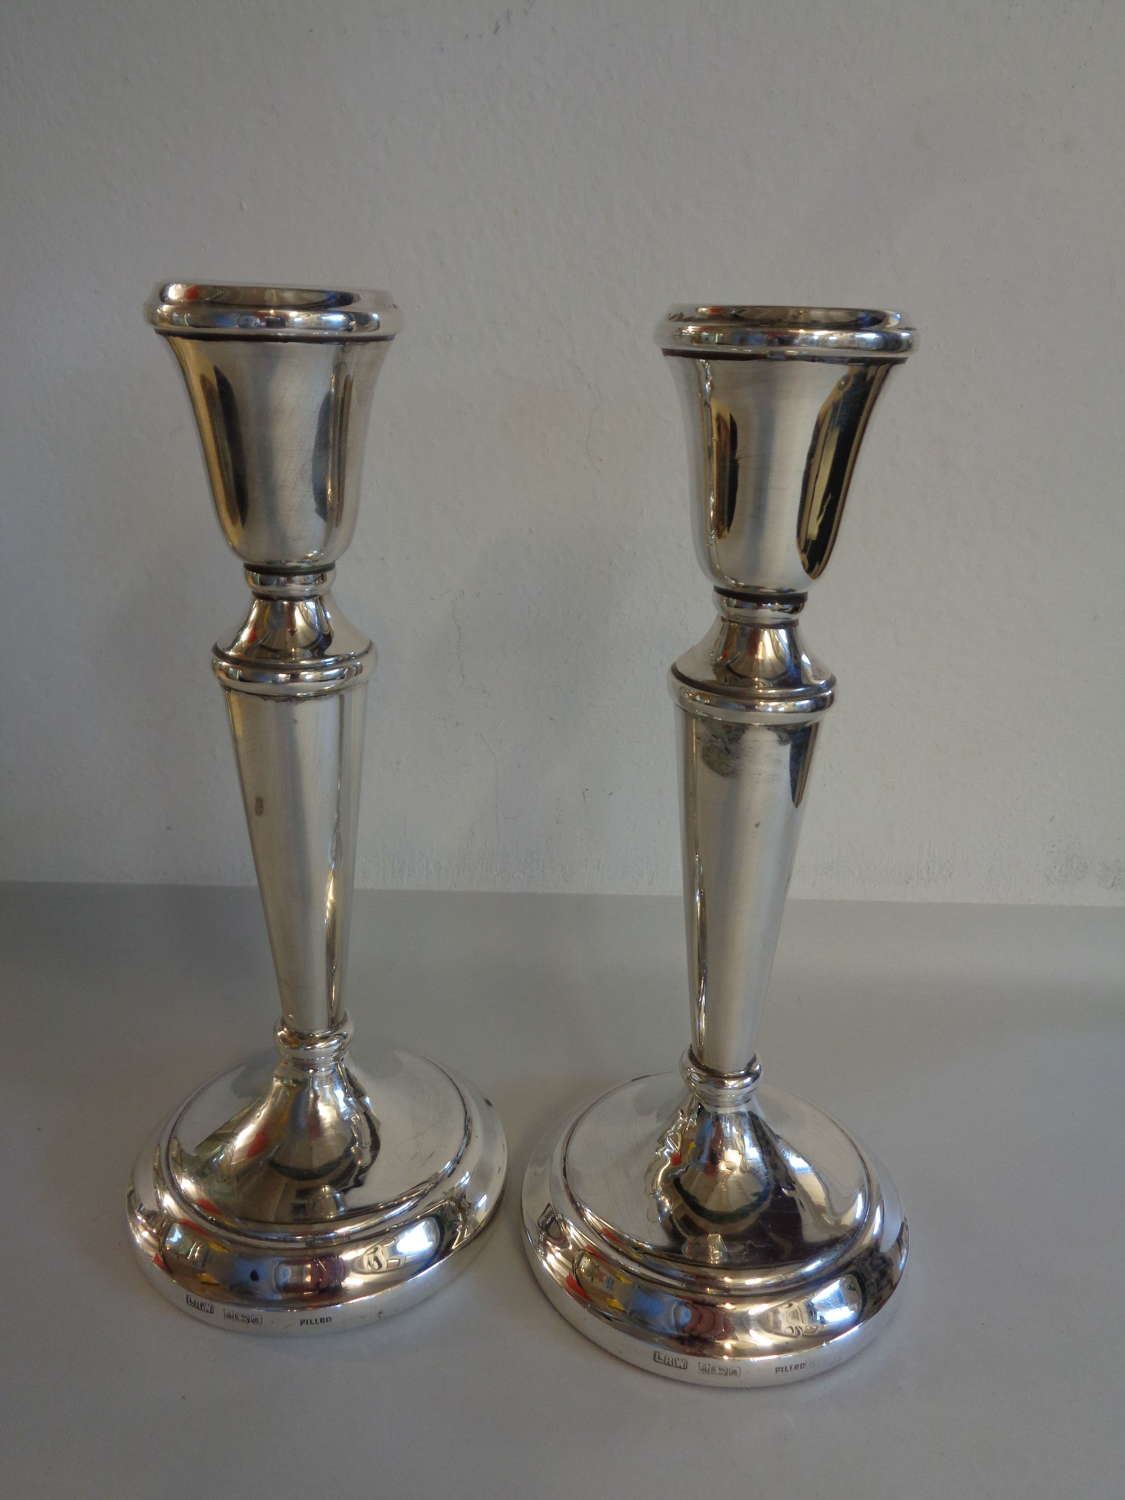 Solid Silver Candlesticks (Pair)